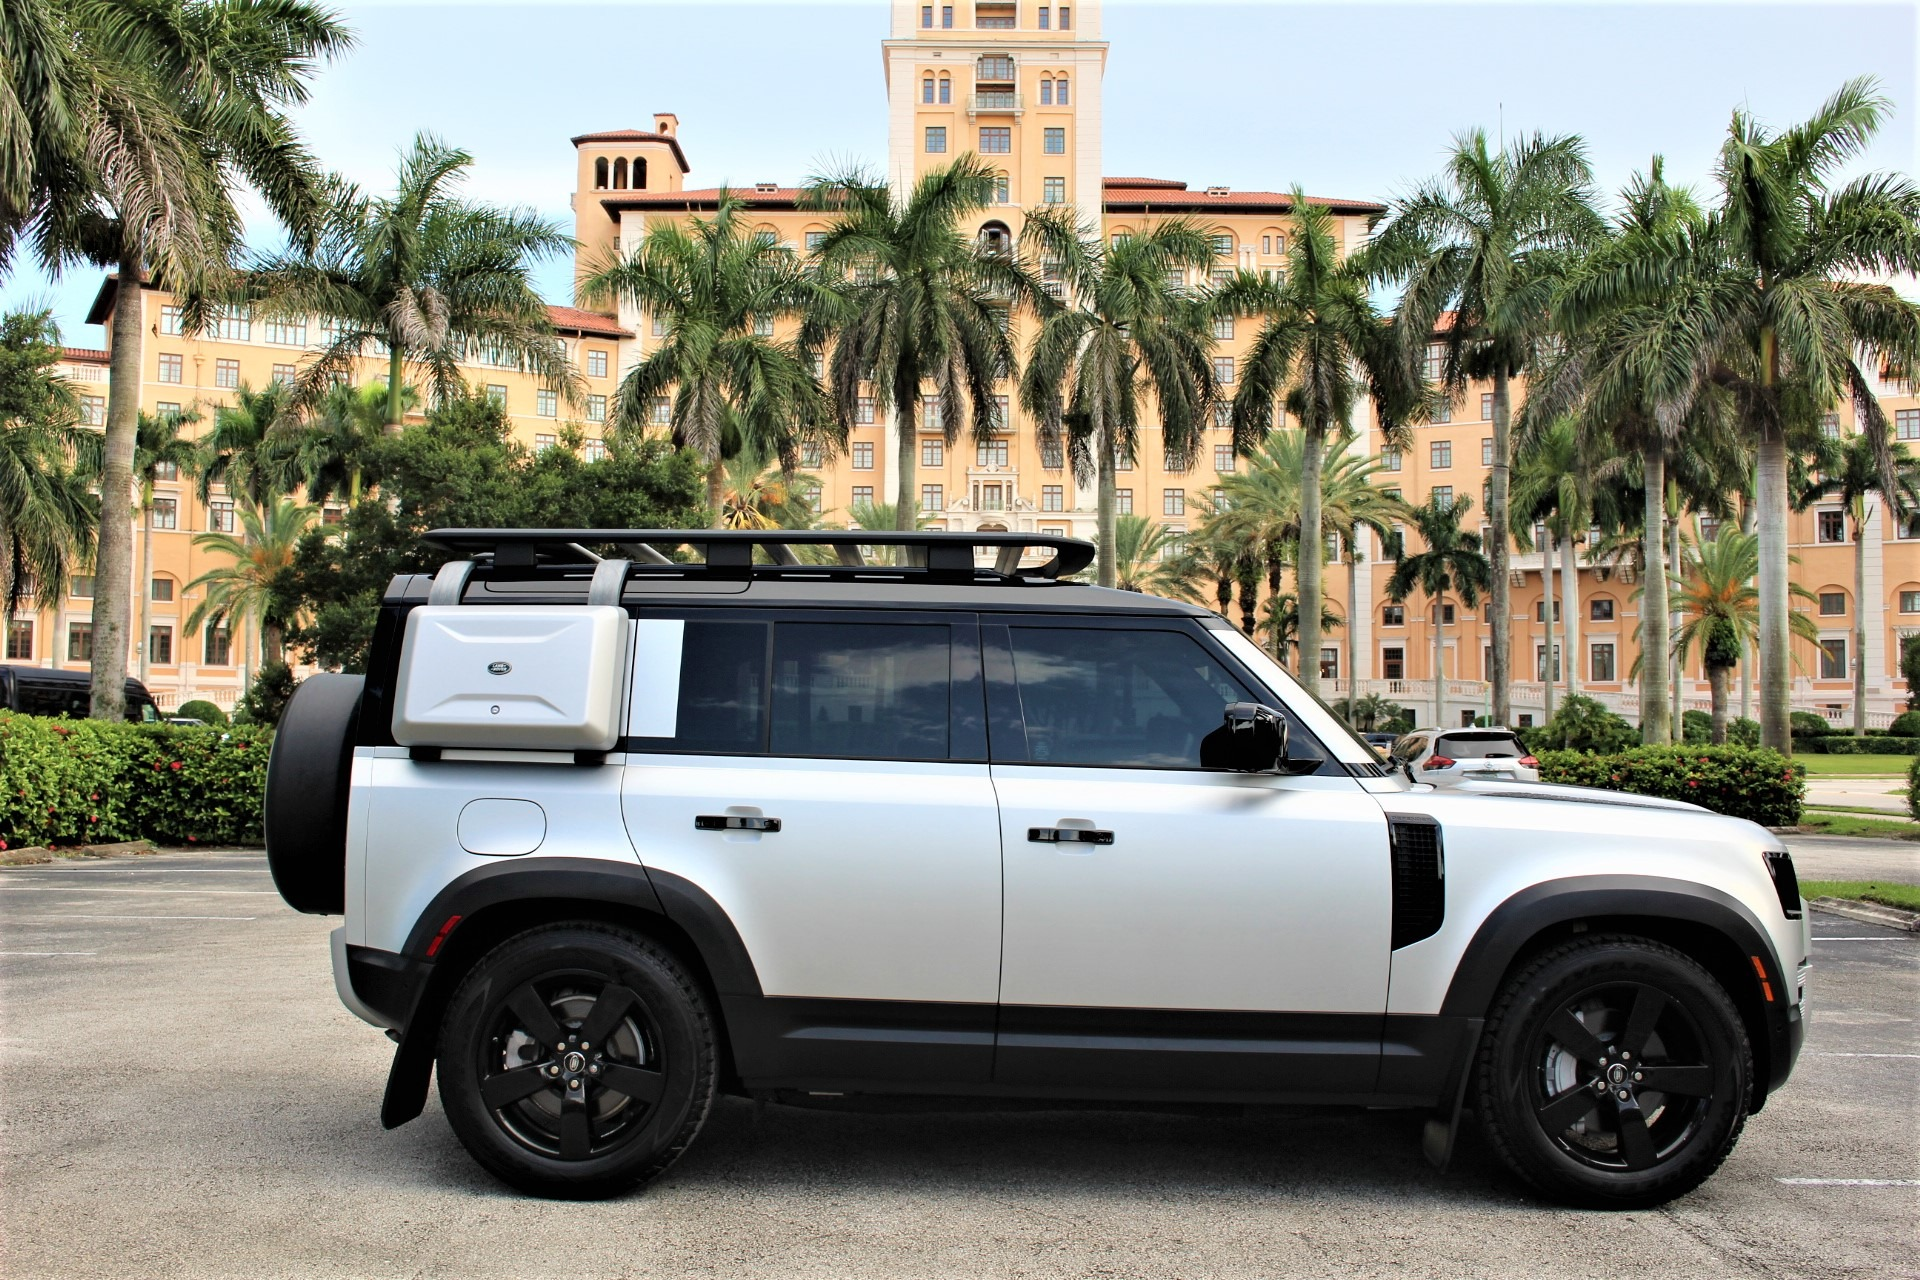 Used 2020 Land Rover Defender 110 HSE for sale Sold at The Gables Sports Cars in Miami FL 33146 1